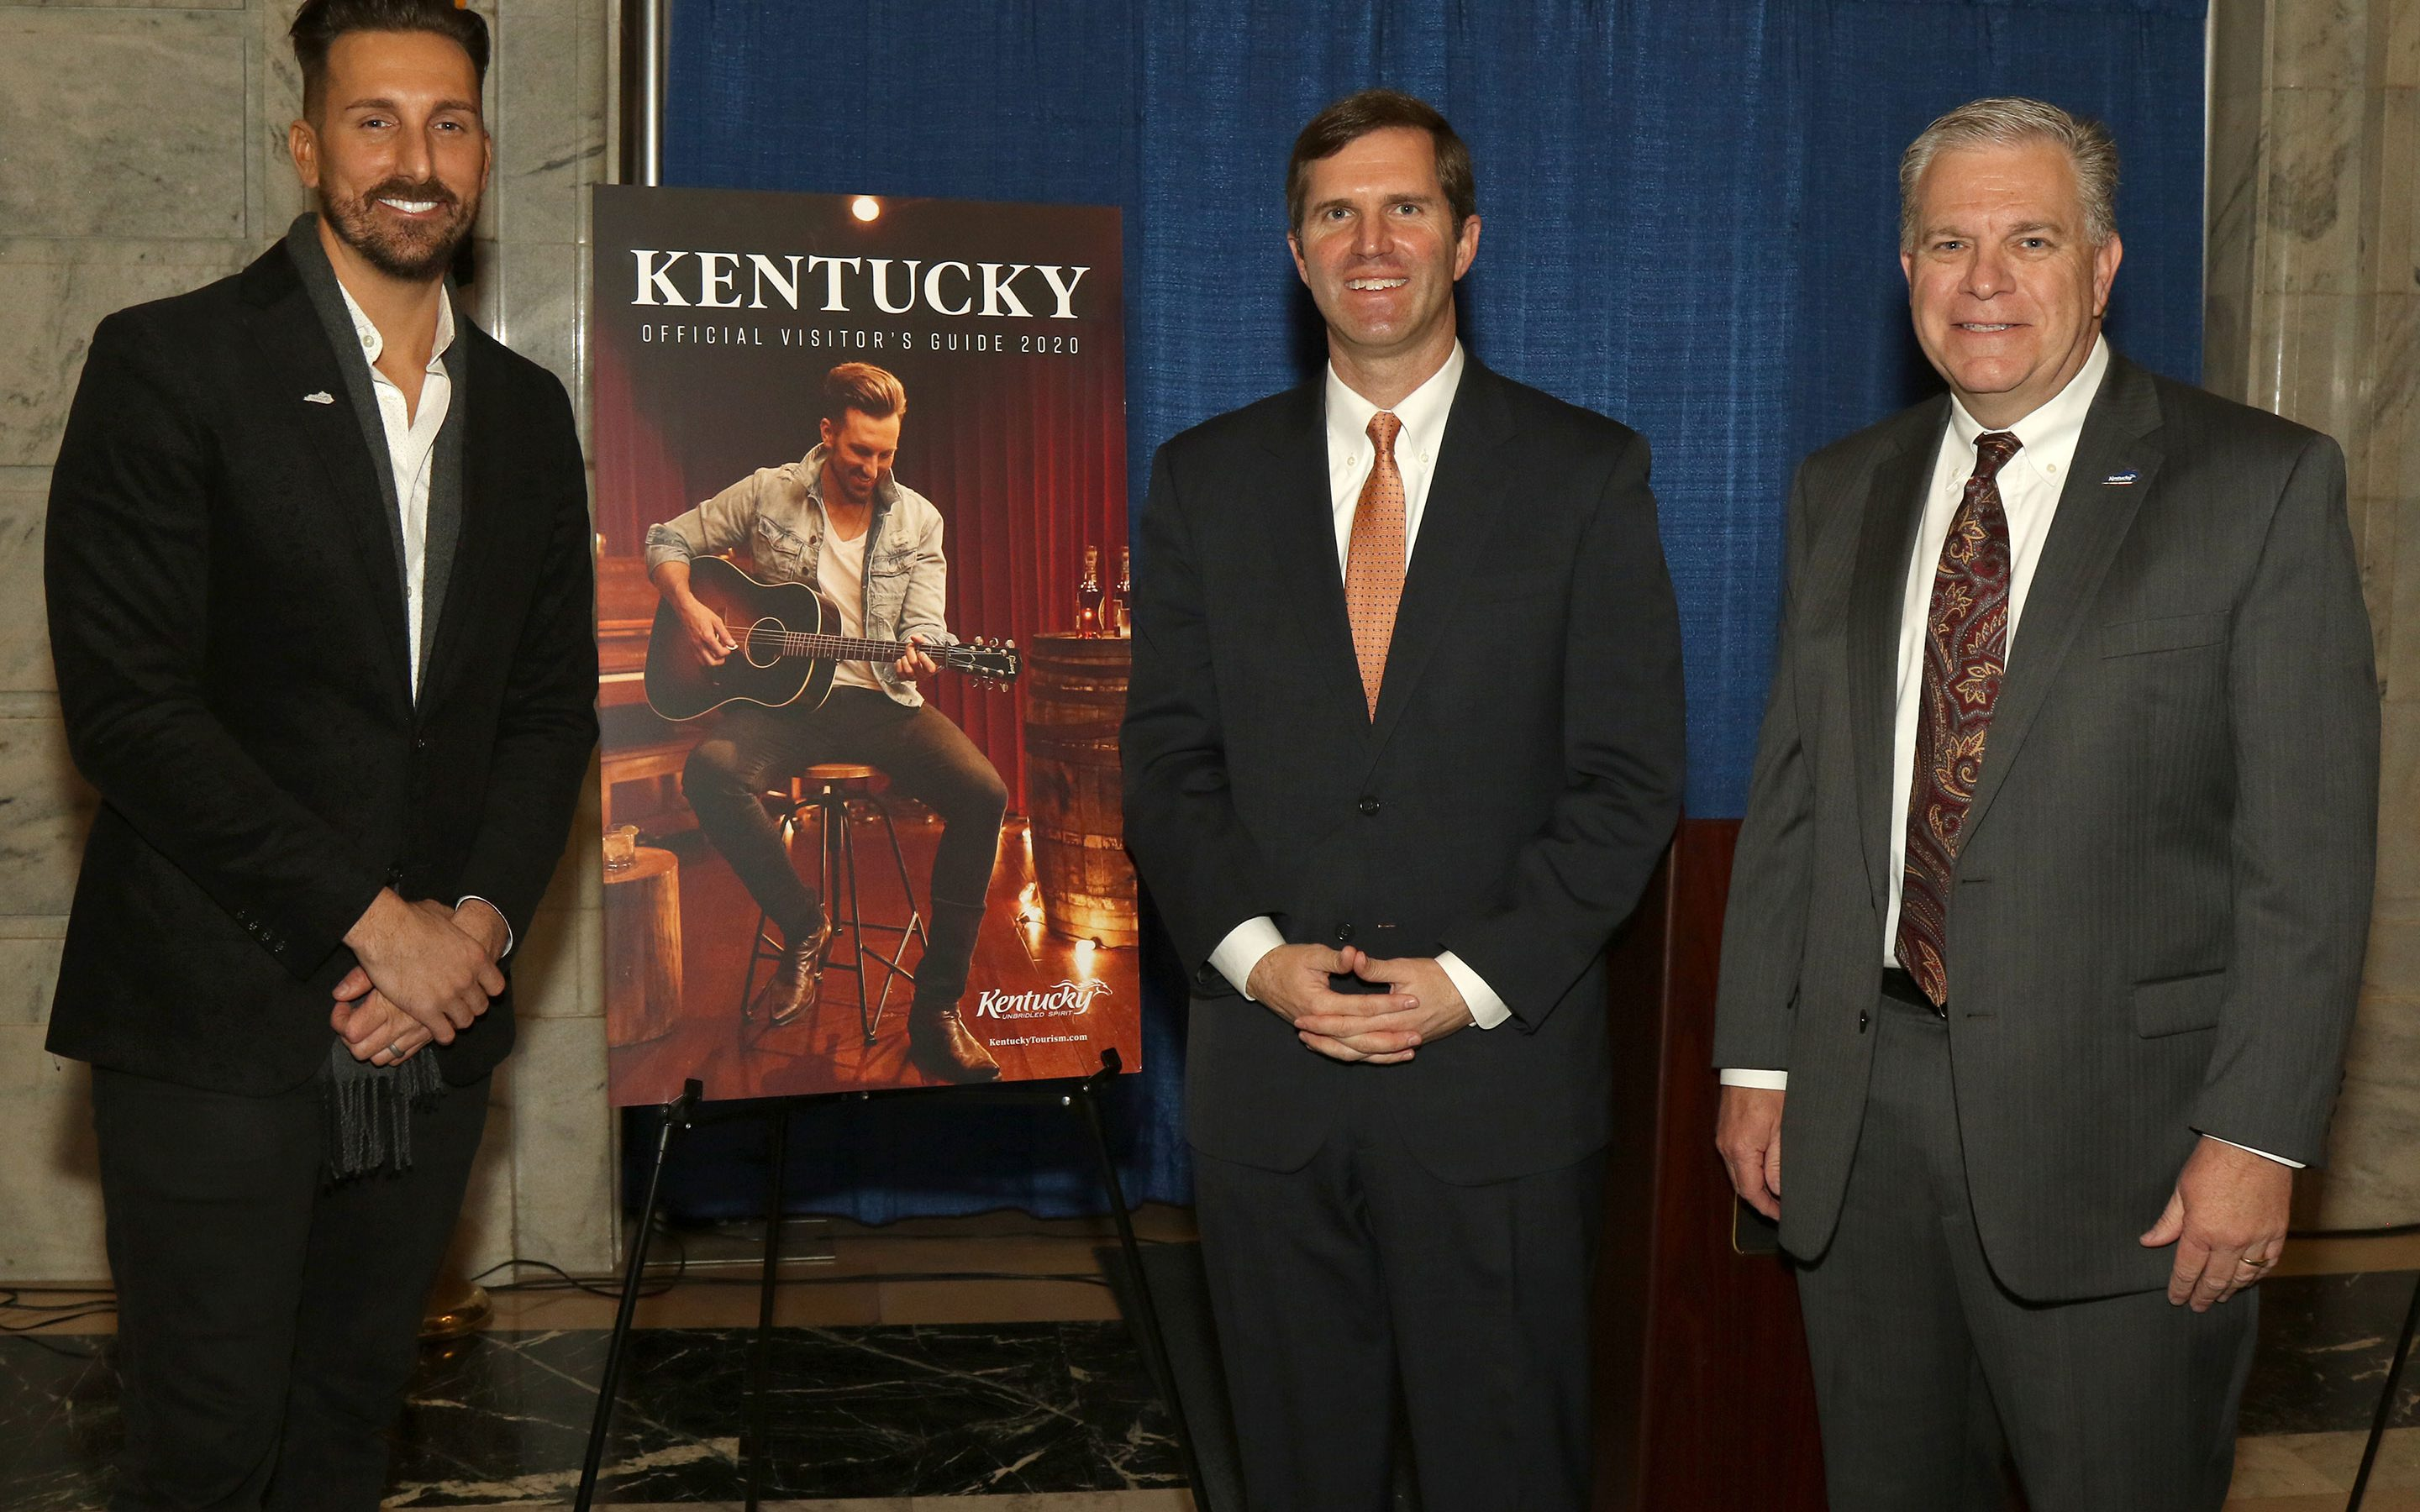 J.D. Shelburne, Kentucky Governor Andy Beshear, Mike Berry